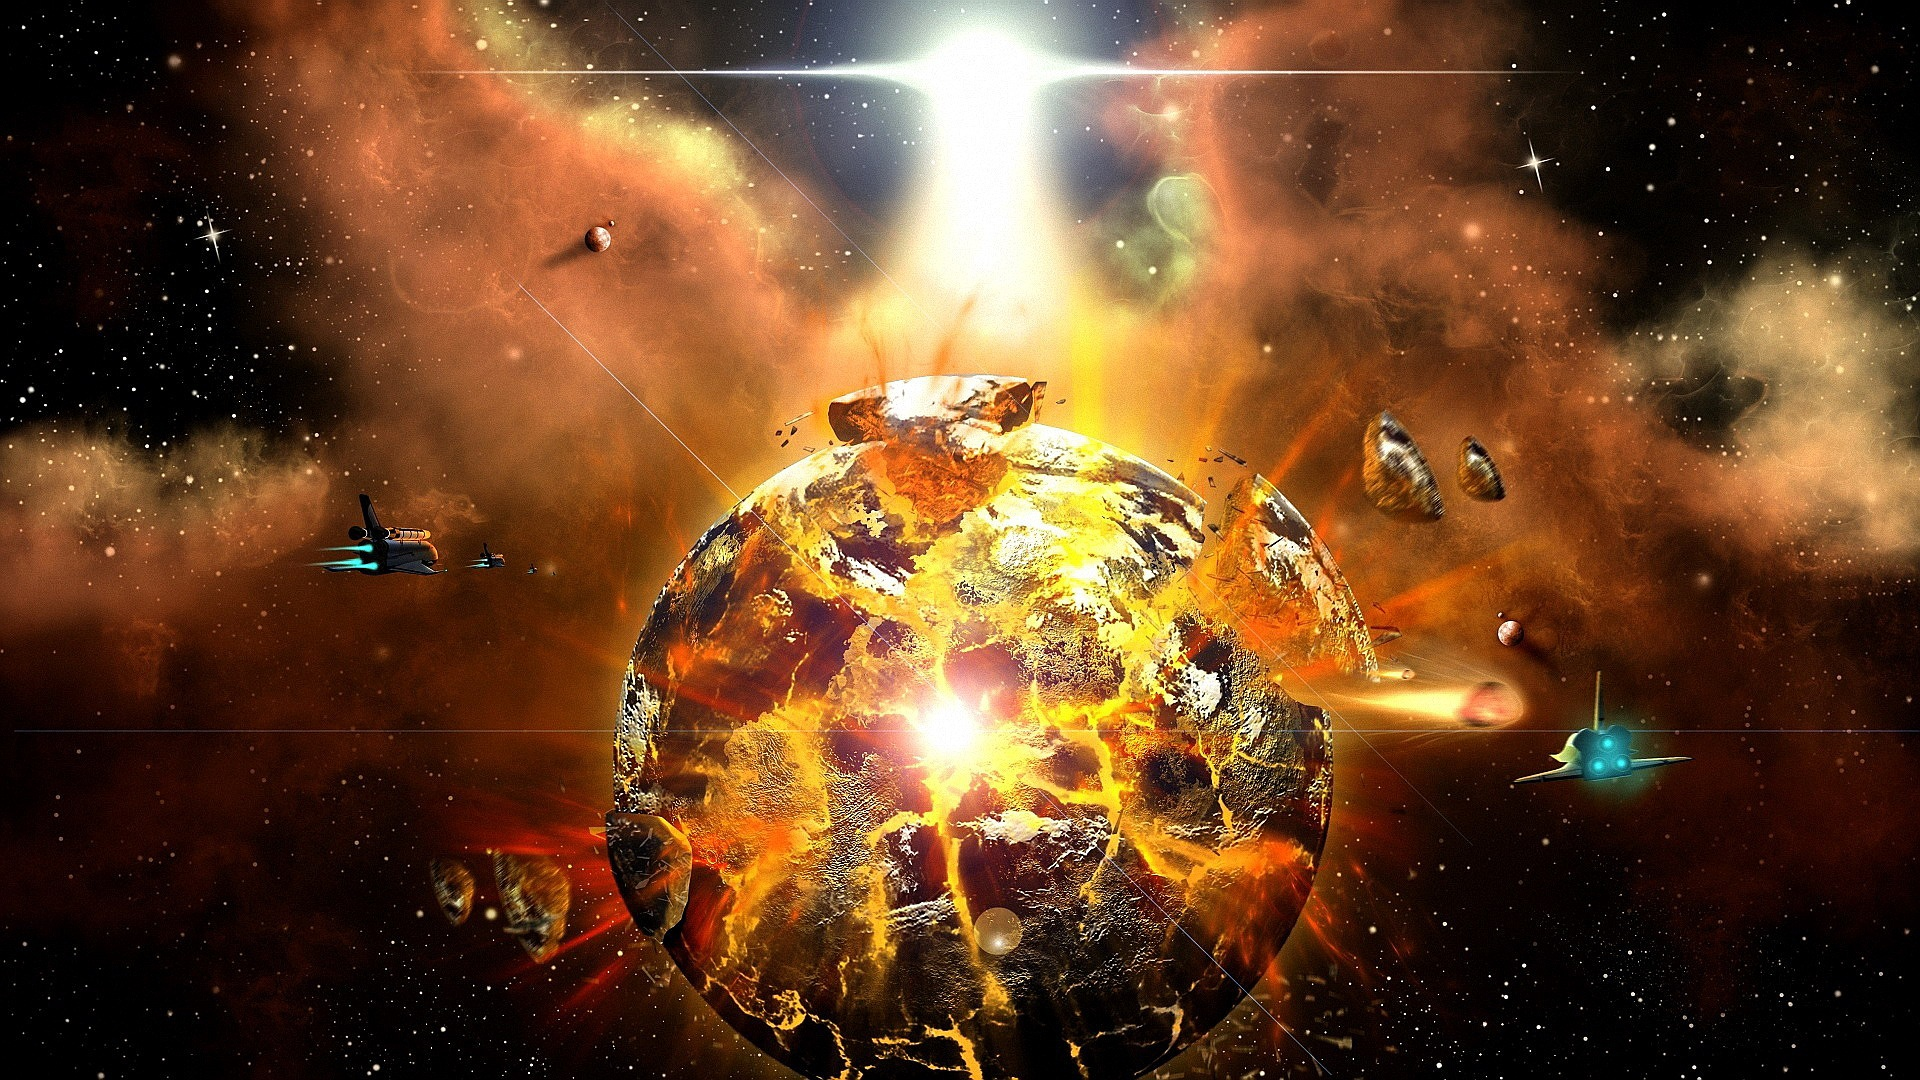 exploding planets wallpapersfor laptops - photo #37